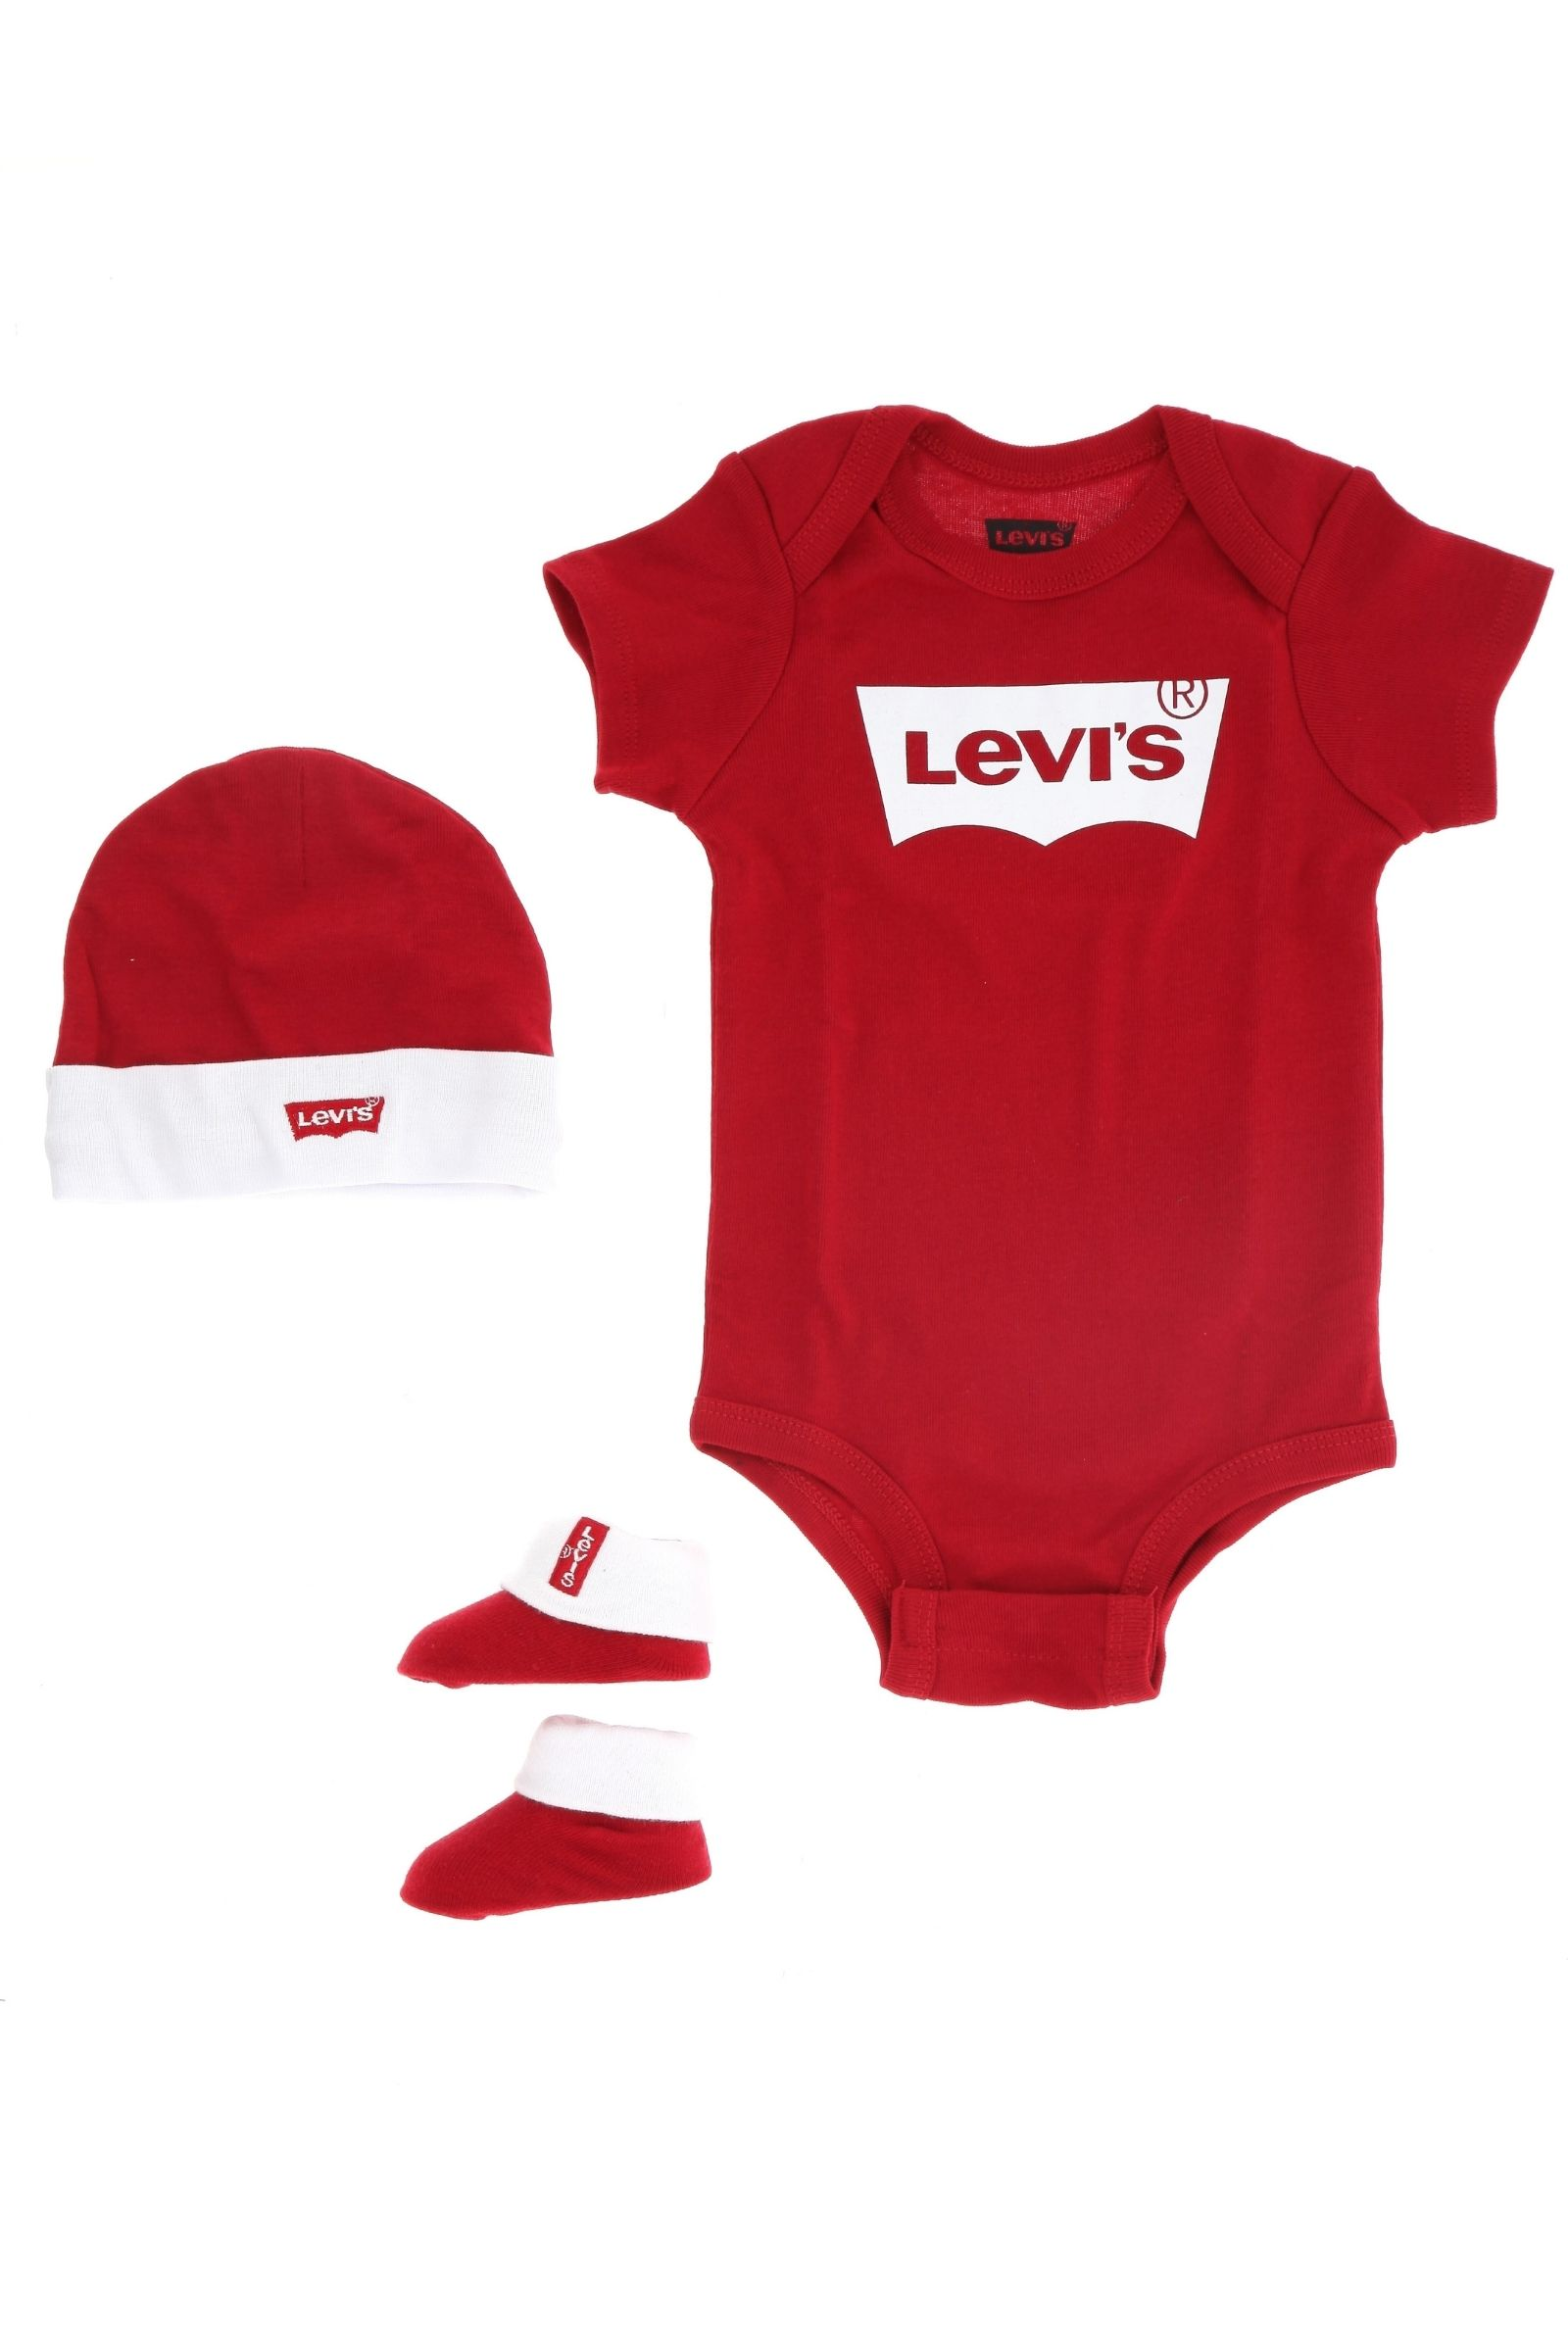 Levis baby LEVIS | Set regalo baby | ML0019R86